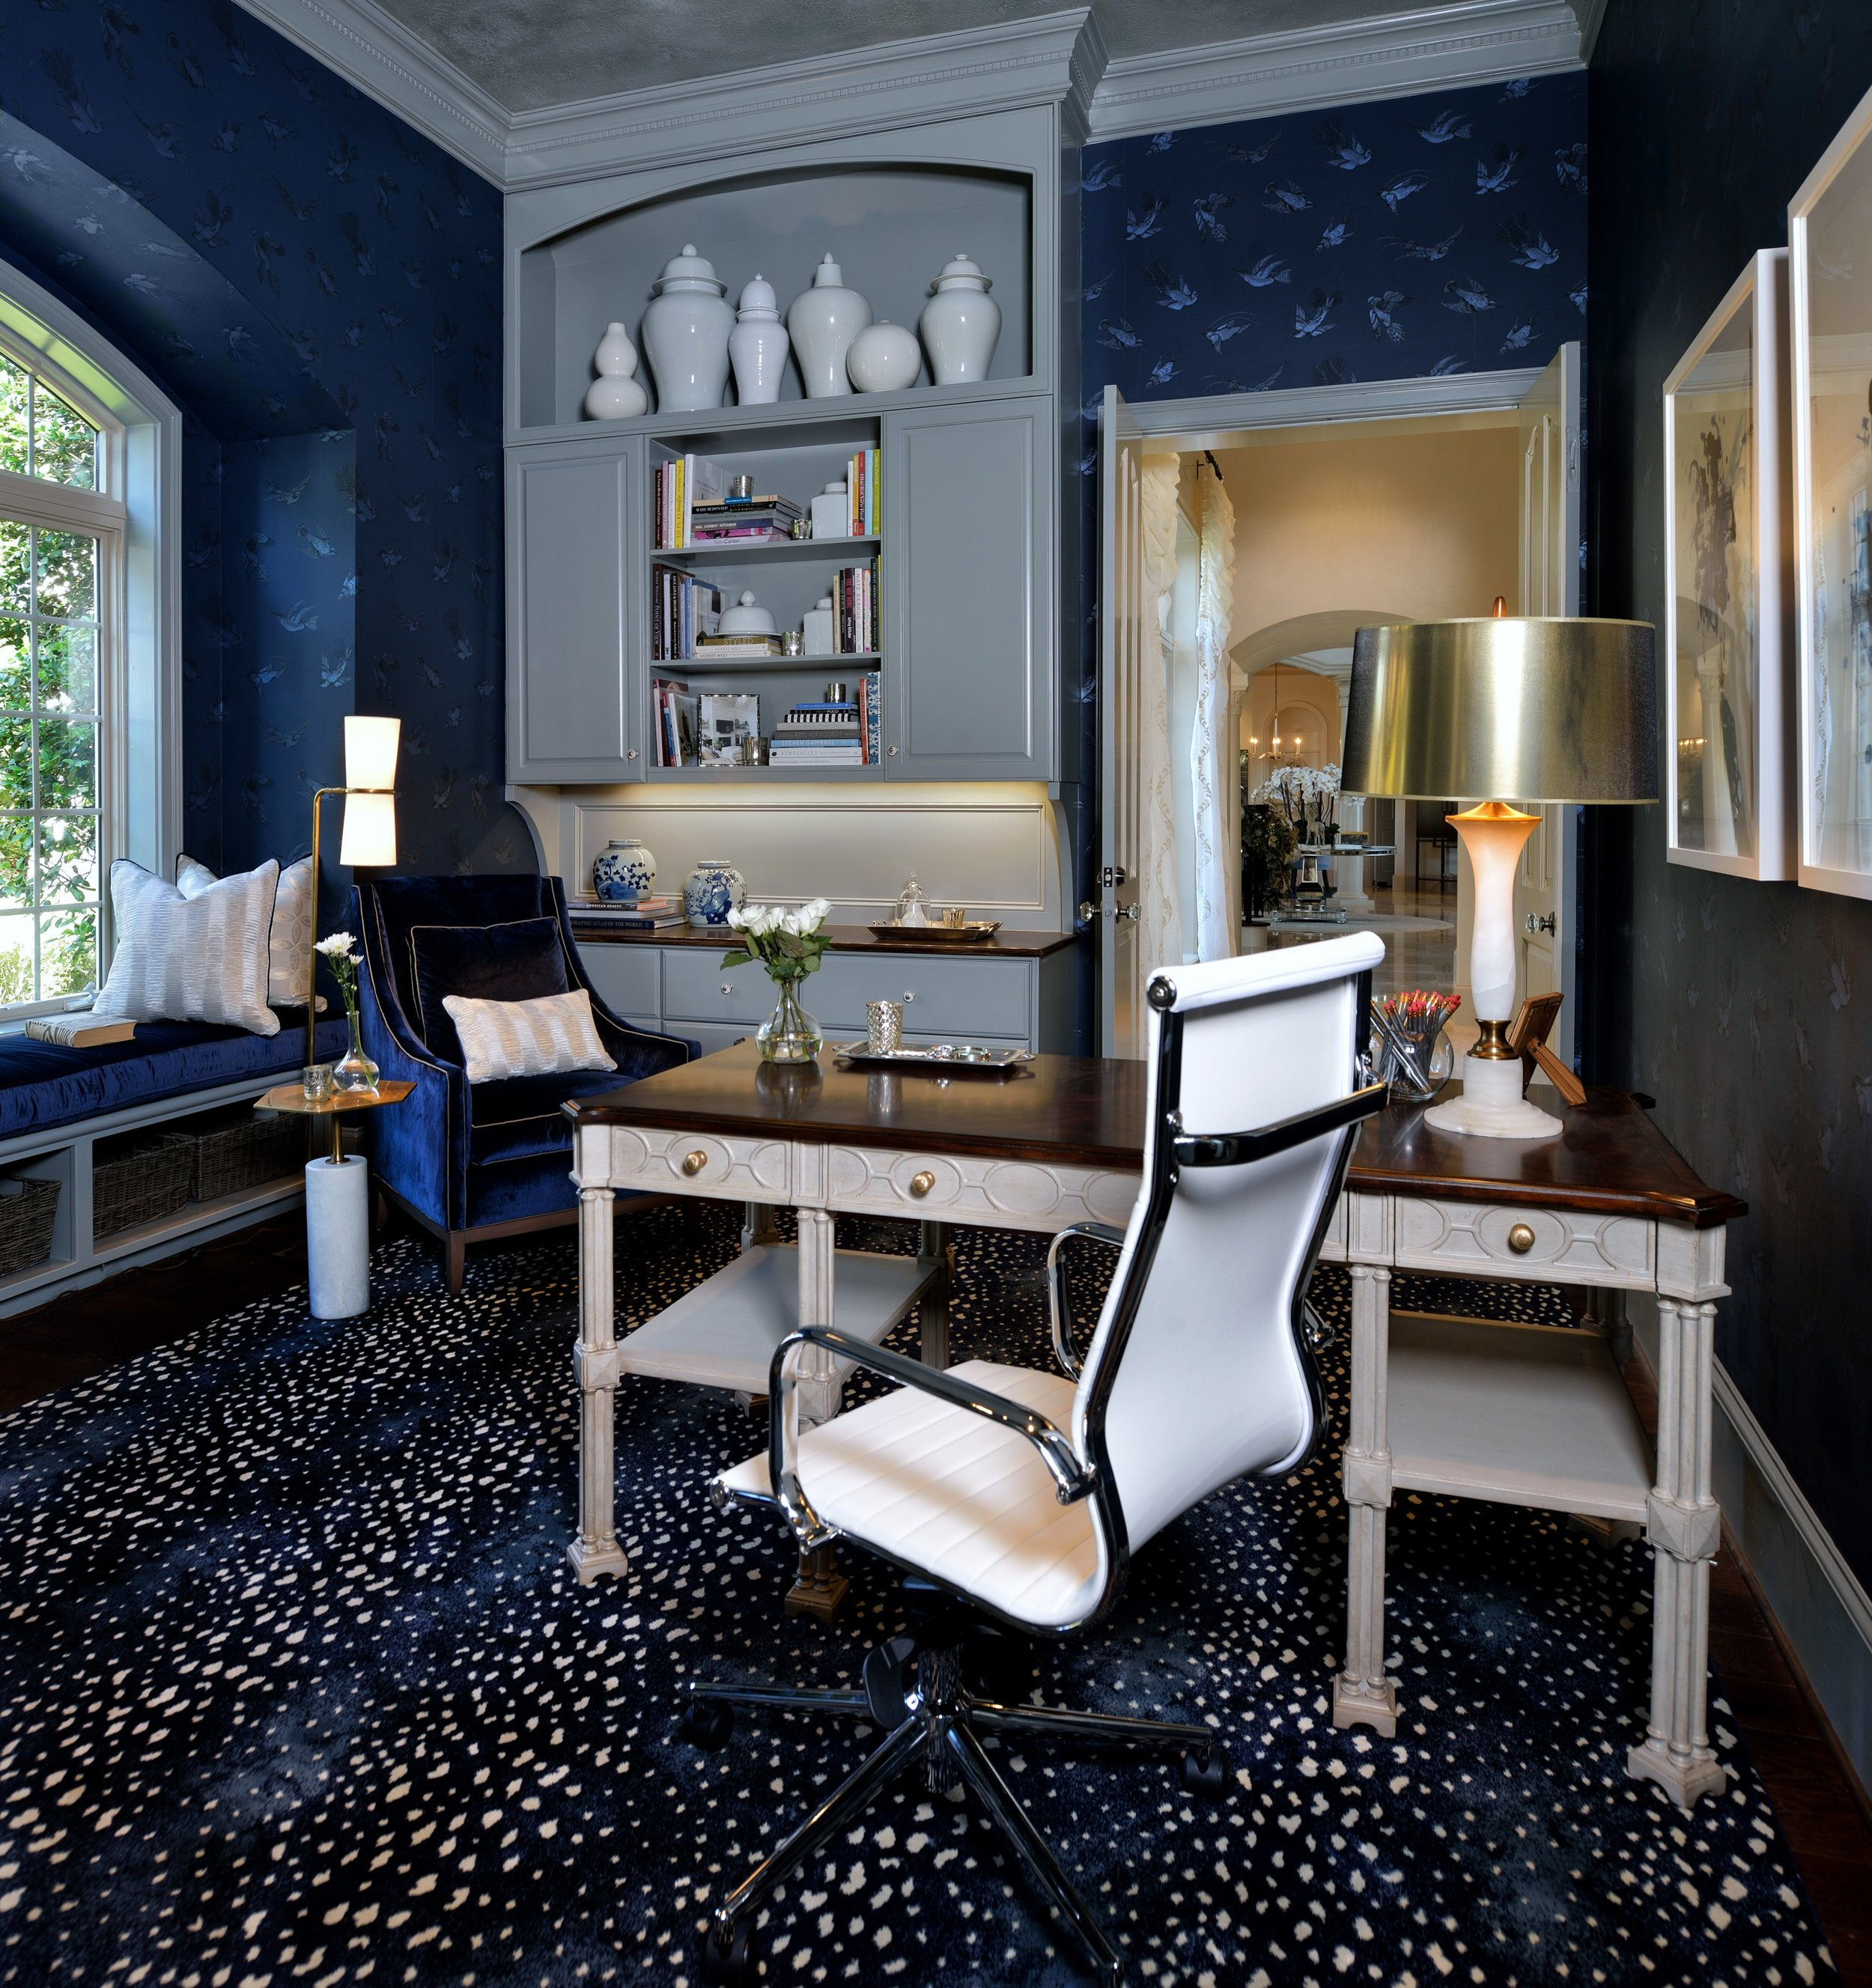 Patterned navy rug in home office - Designer: Carla Aston, Photo by Miro Dvorscak, #navyrug #antelopepattern #antilocarpa #stark